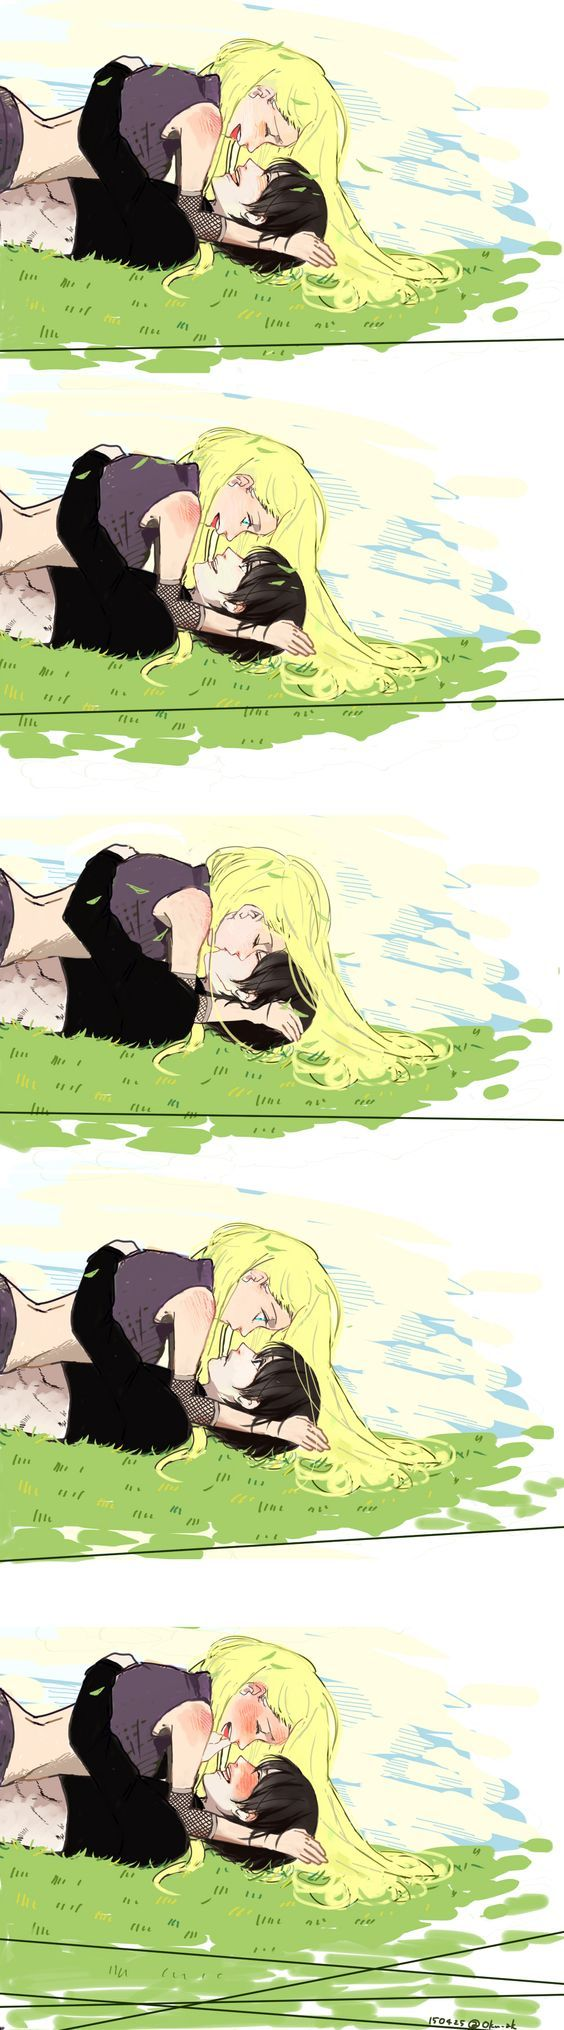 Ino blushes cus she feels sai's boner Sai blushes cus he knows she feels it